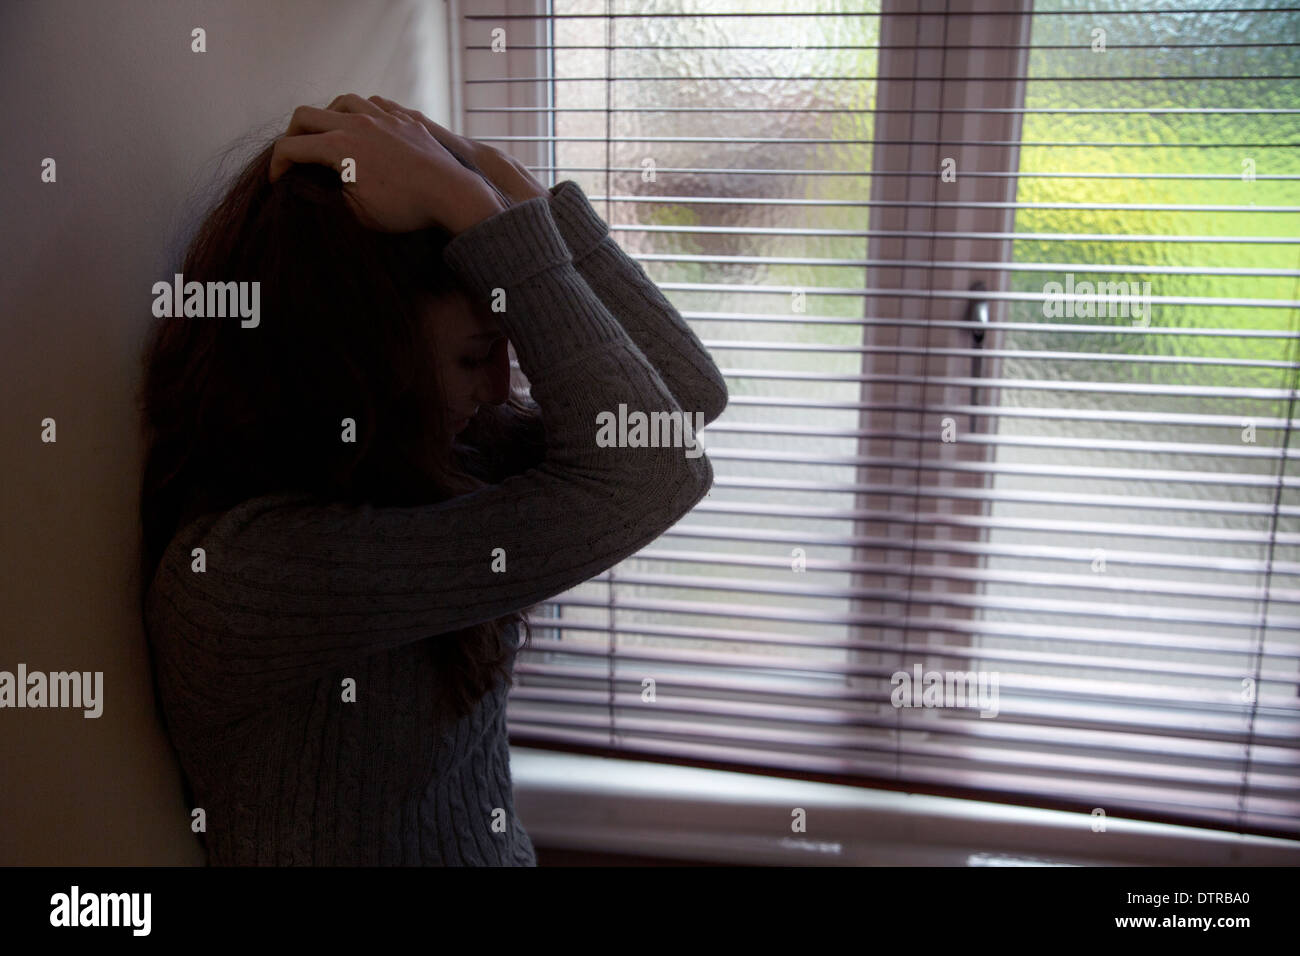 Unrecognizable young female with her hands on her head by a window. - Stock Image